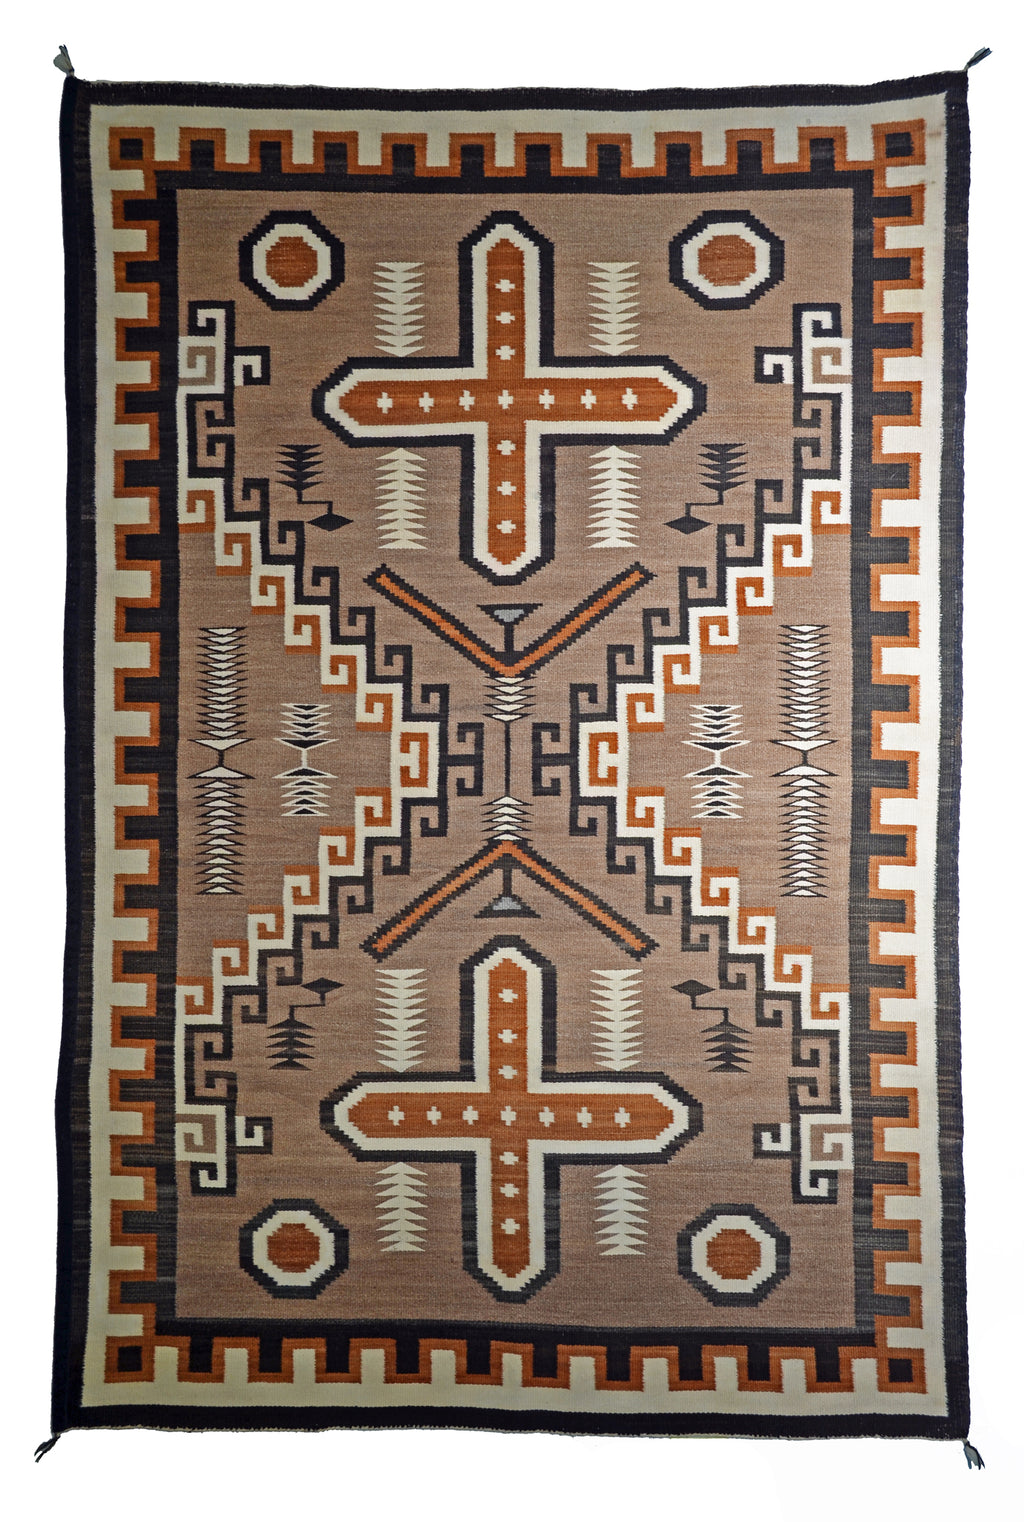 "Two Grey Hills - Sanostee Navajo Weaving : Historic : PC 135 : 48"" x 72"" - Getzwiller's Nizhoni Ranch Gallery"